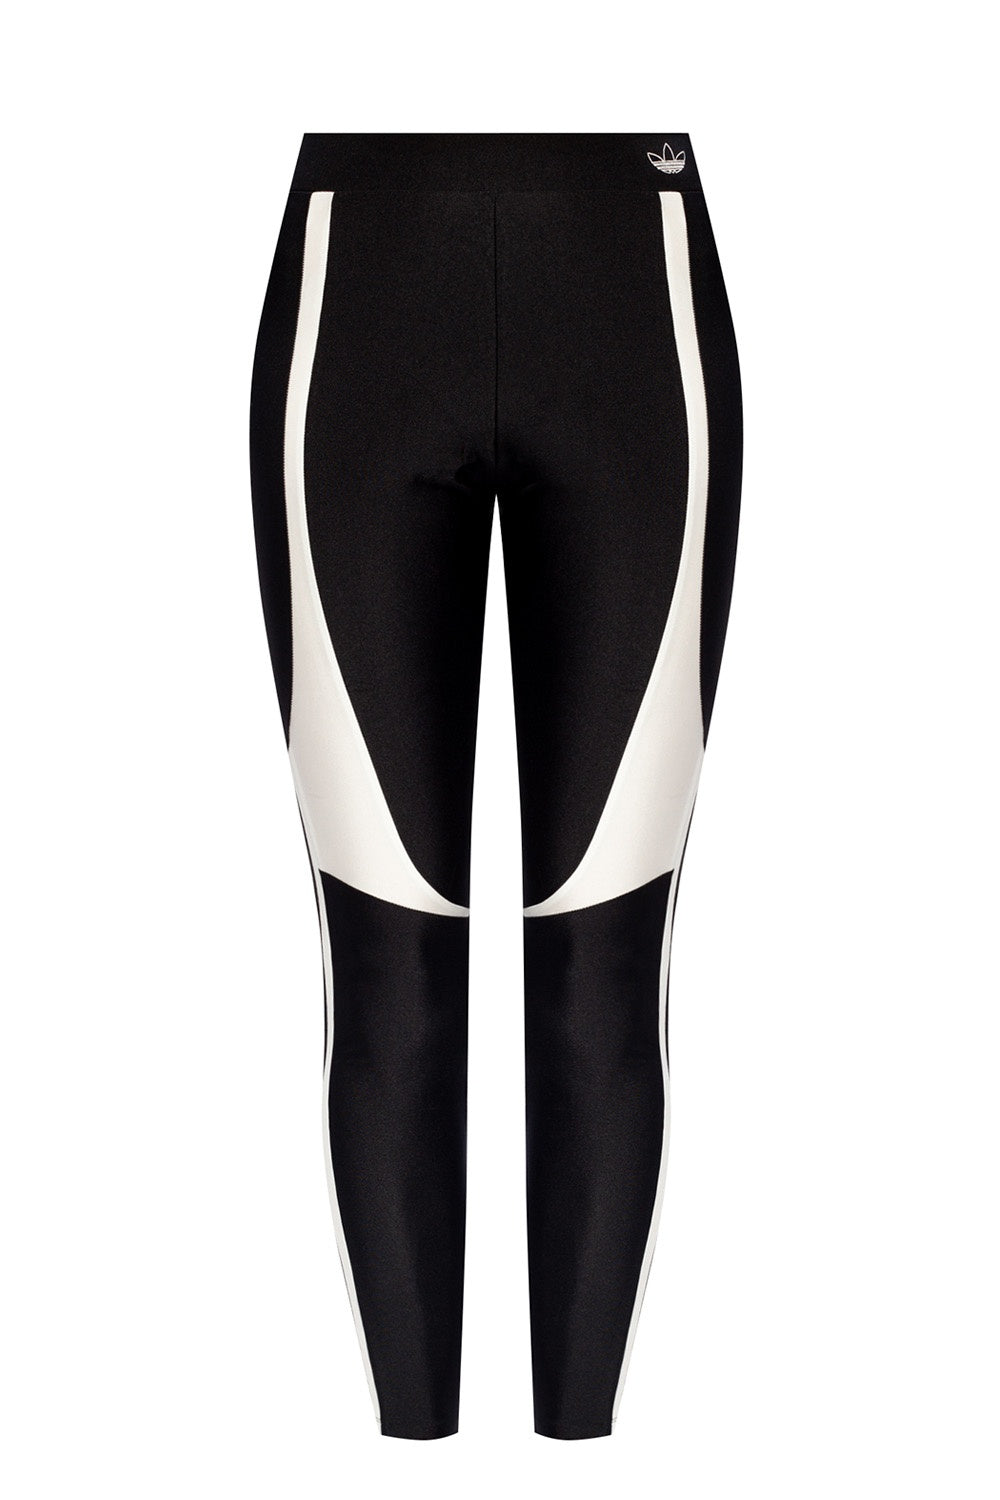 Leggins Adidas Tights GC6770